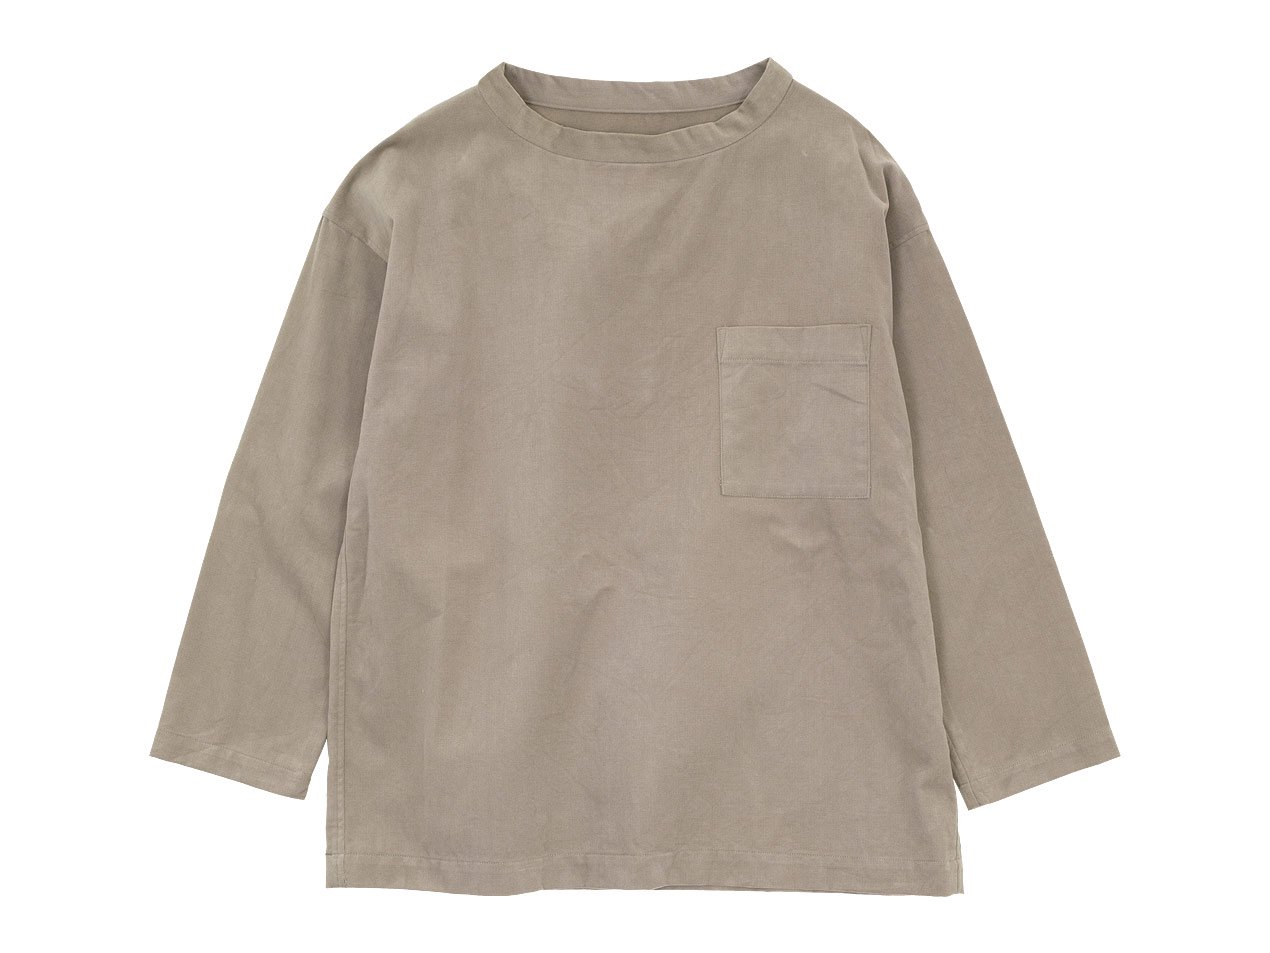 TOUJOURS Long Sleeve Big T-shirt 31Sand Gray 【KM33IS04】